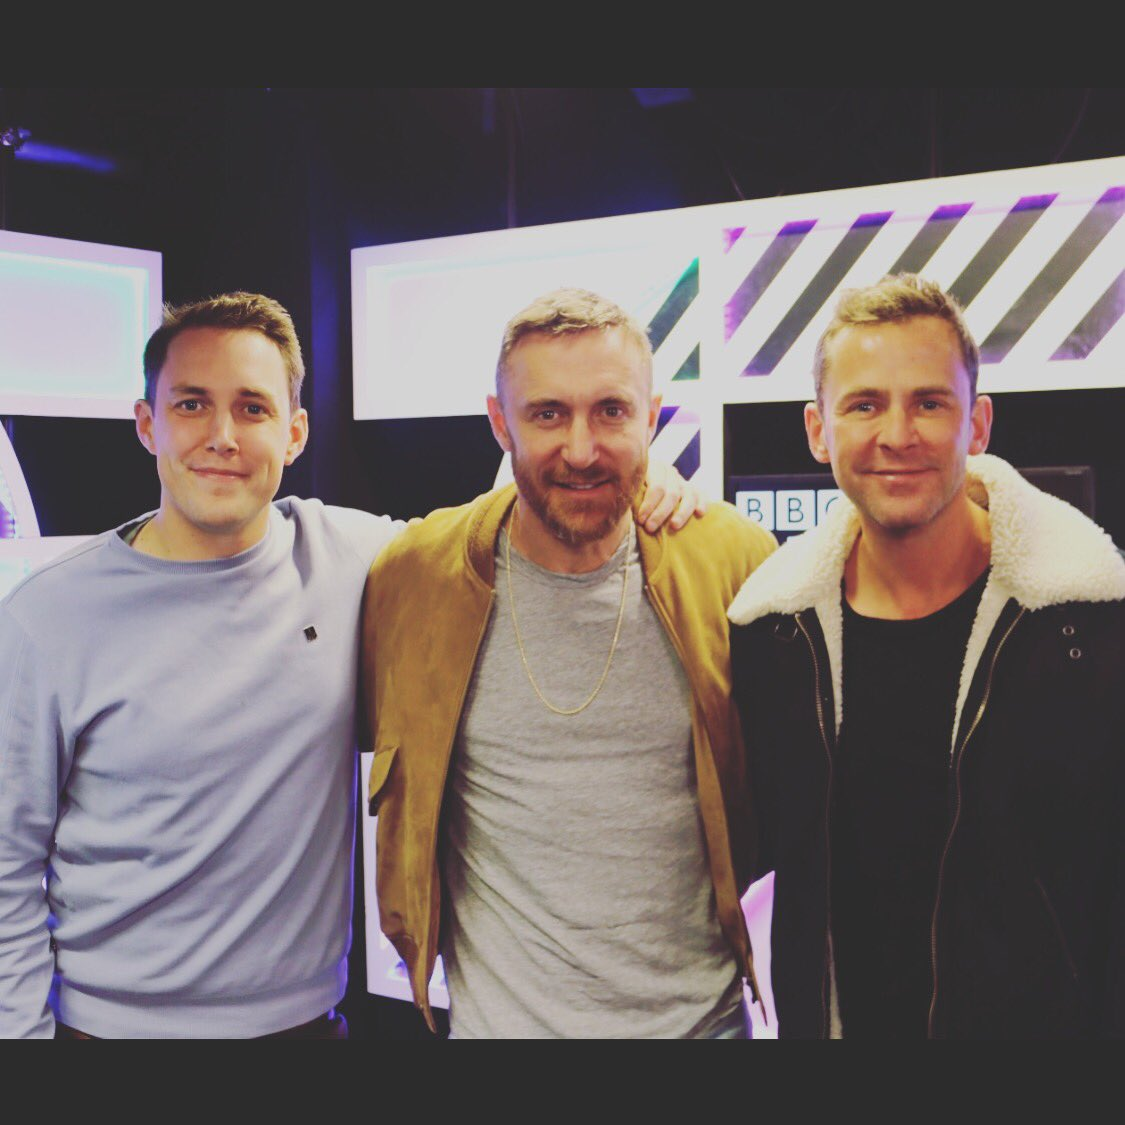 RT @scott_mills: We ♥️@davidguetta @BBCR1 https://t.co/m9ZHJLxRQe